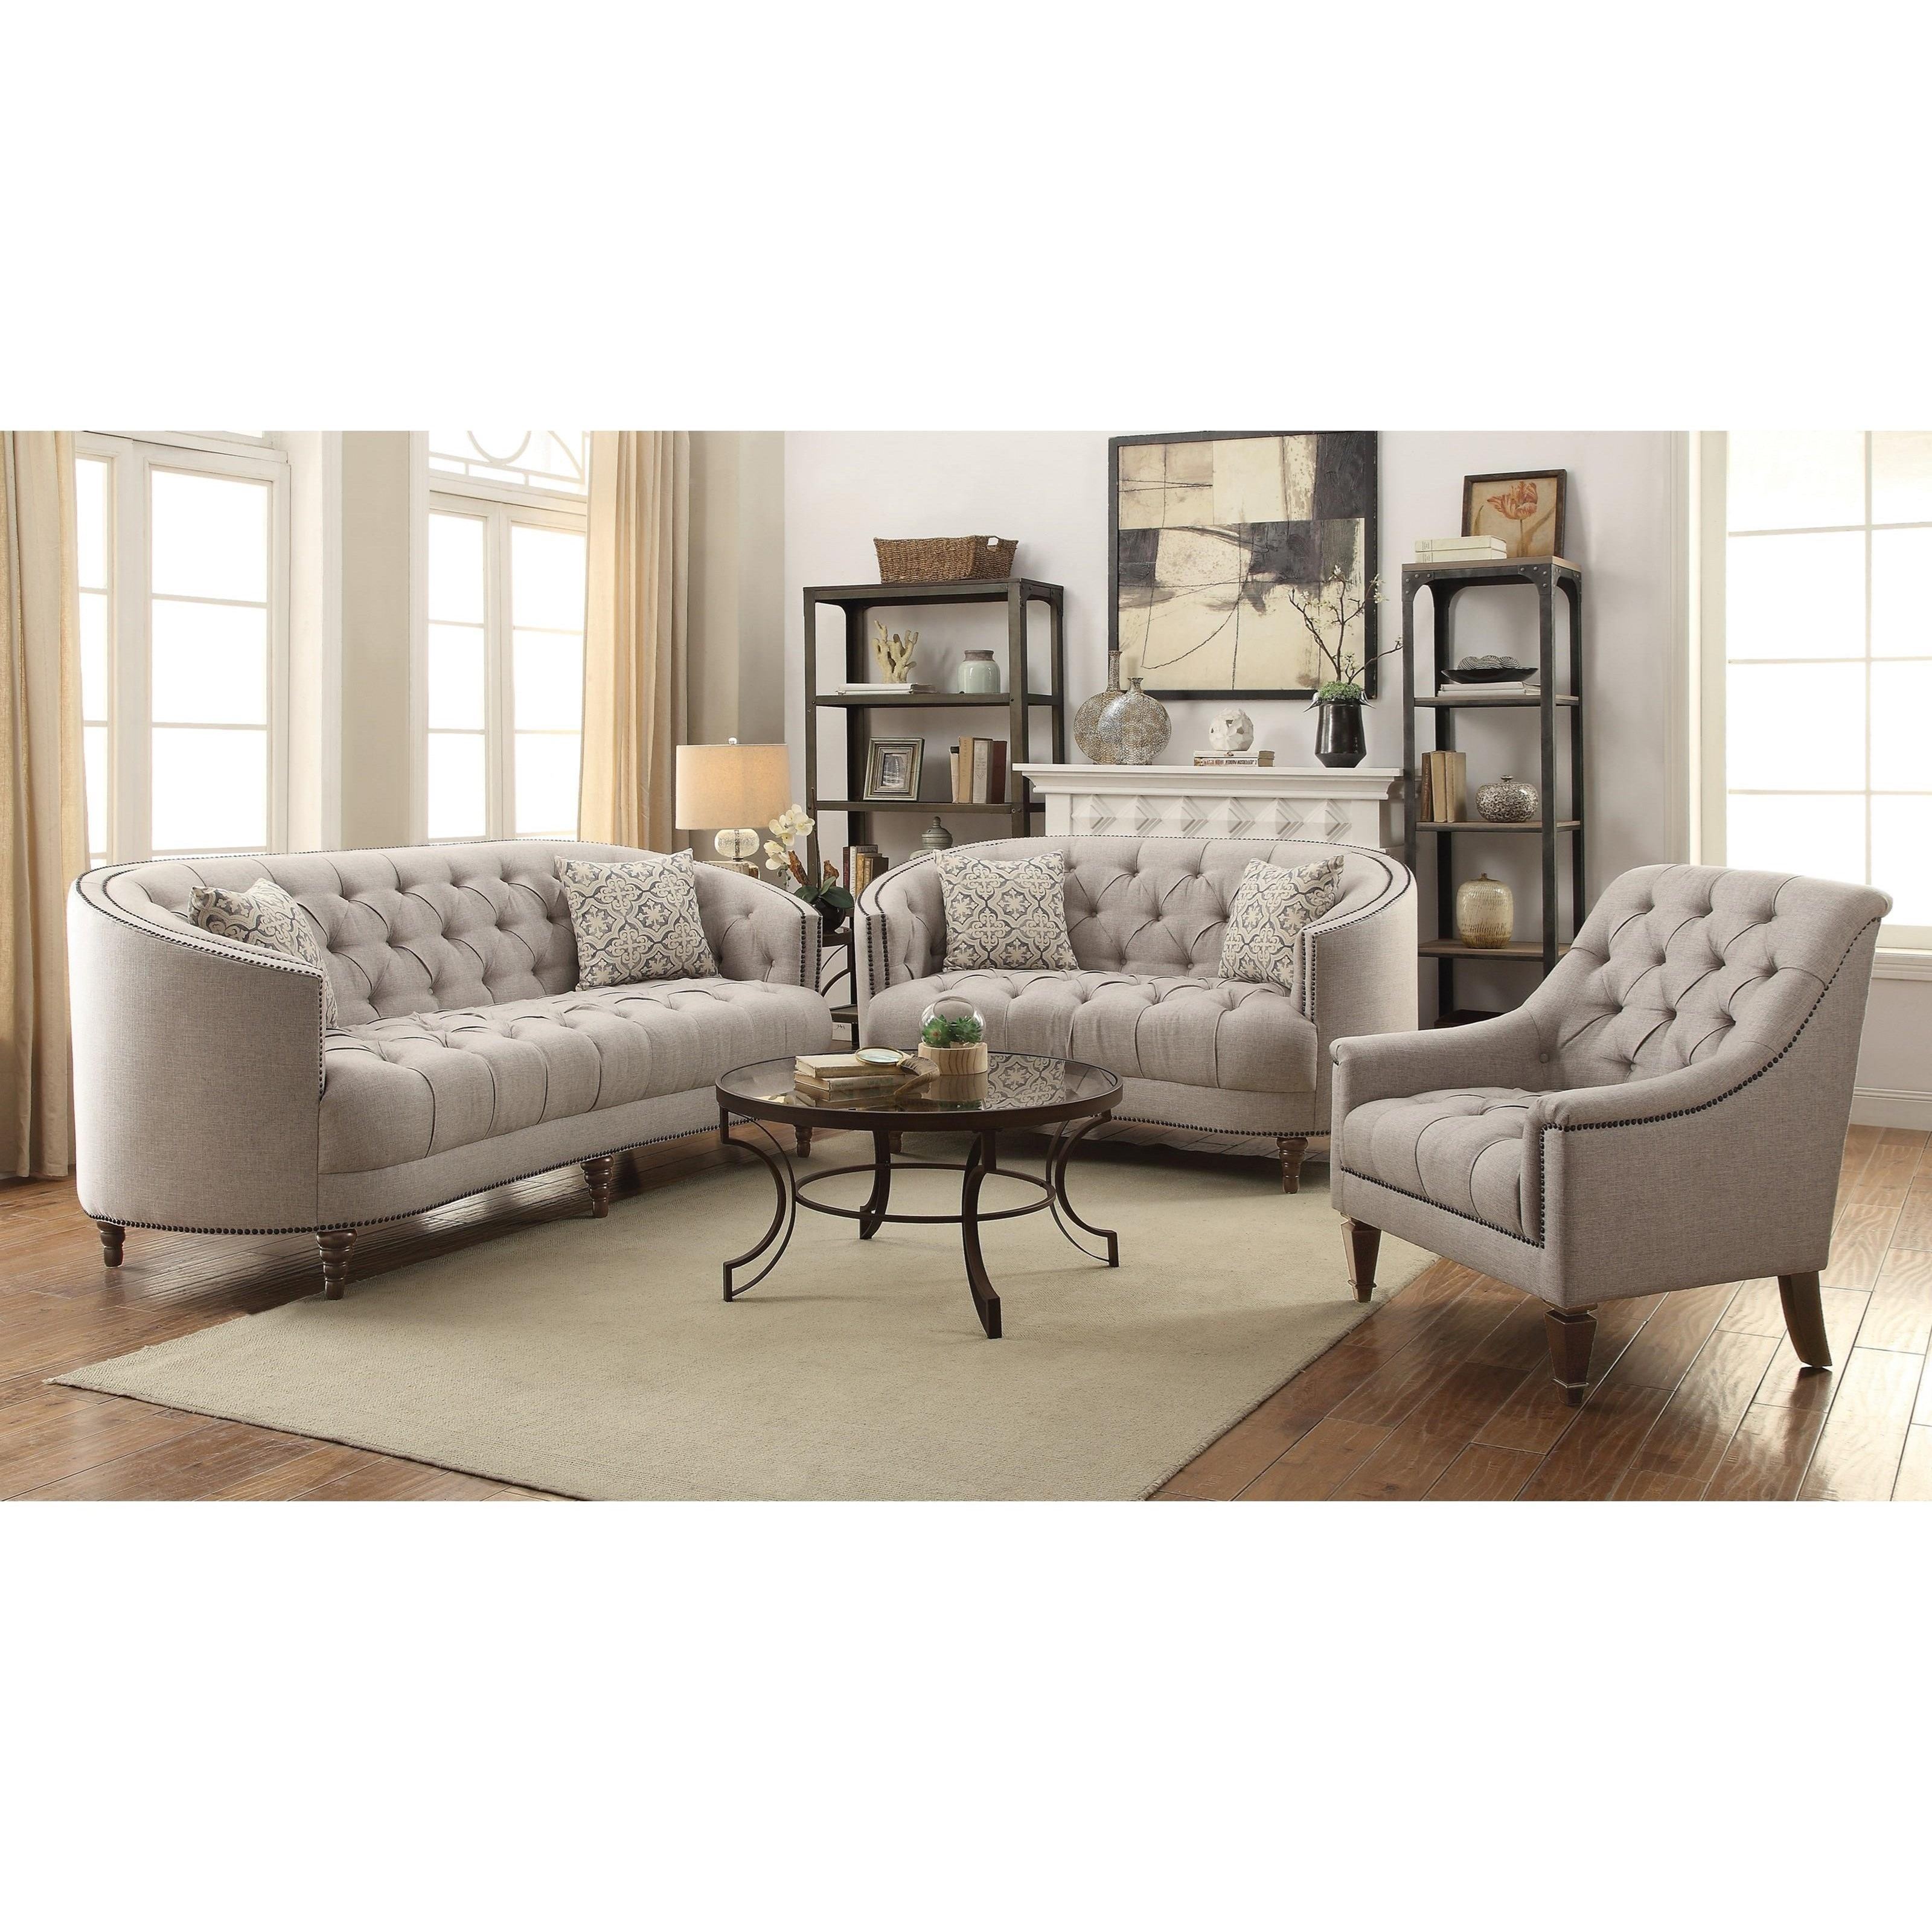 C Shaped Loveseat With Button Tufting And Nailhead Trim